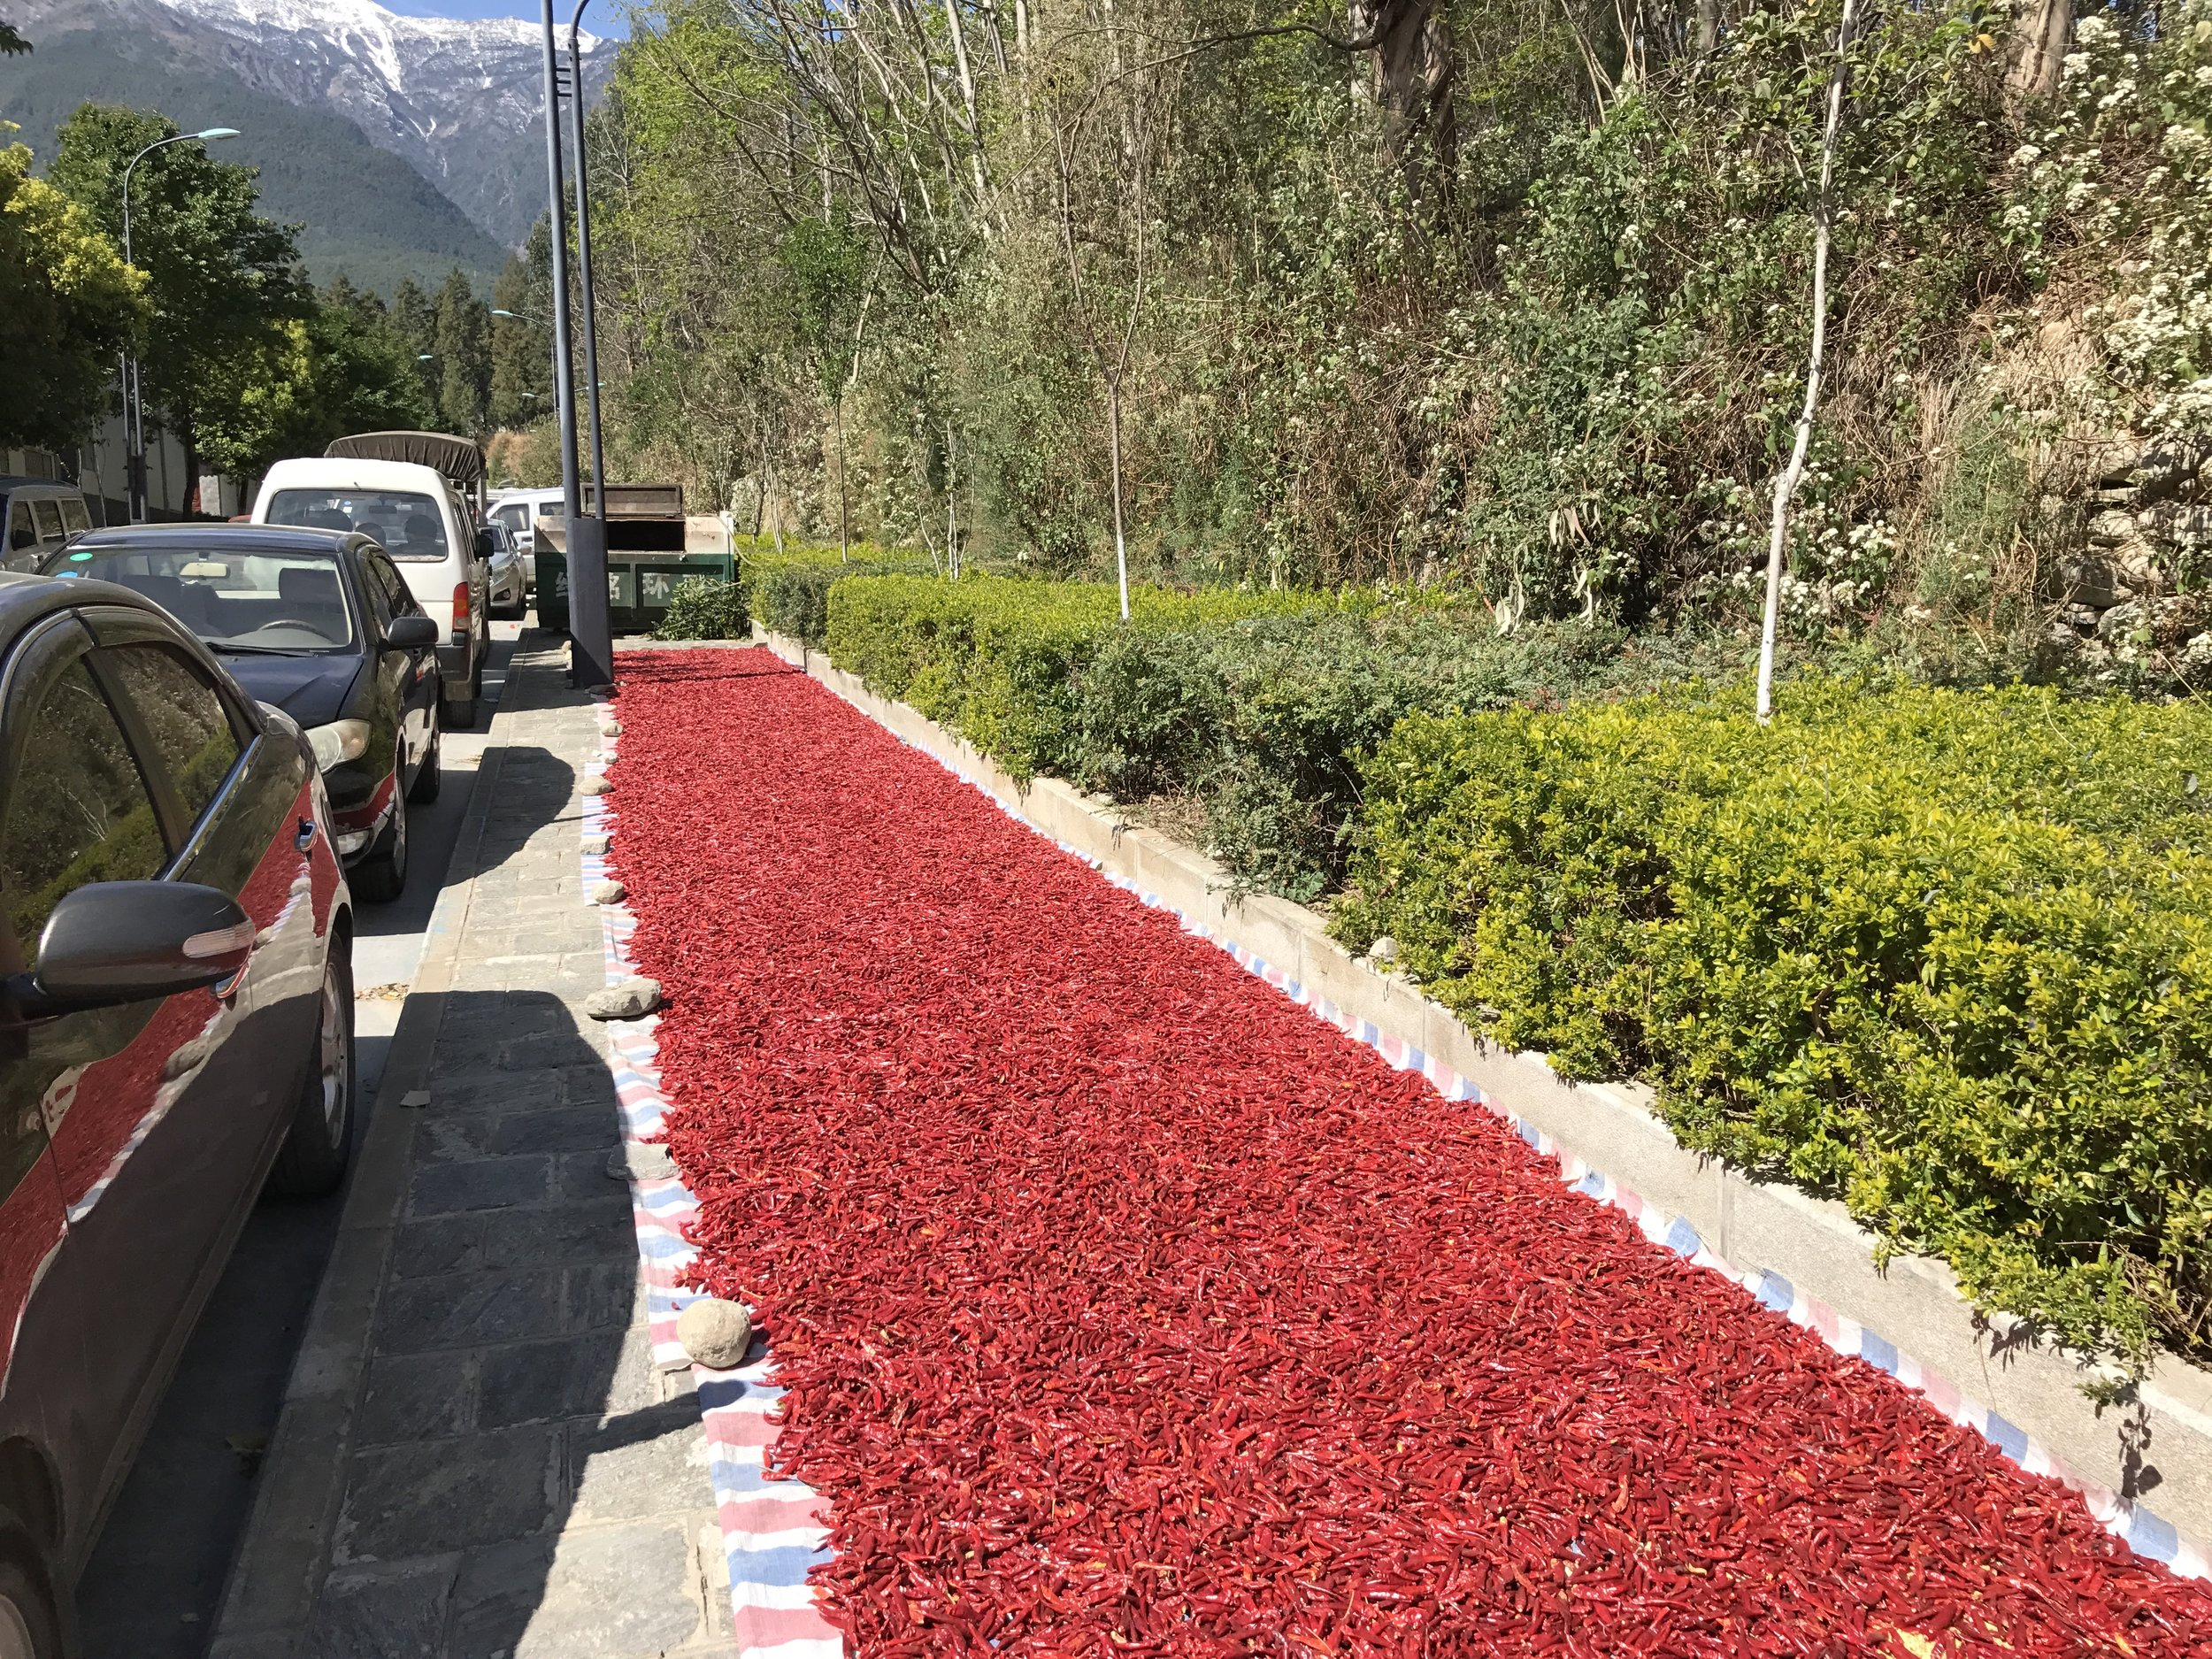 Drying chili peppers on the sidewalk in Dali